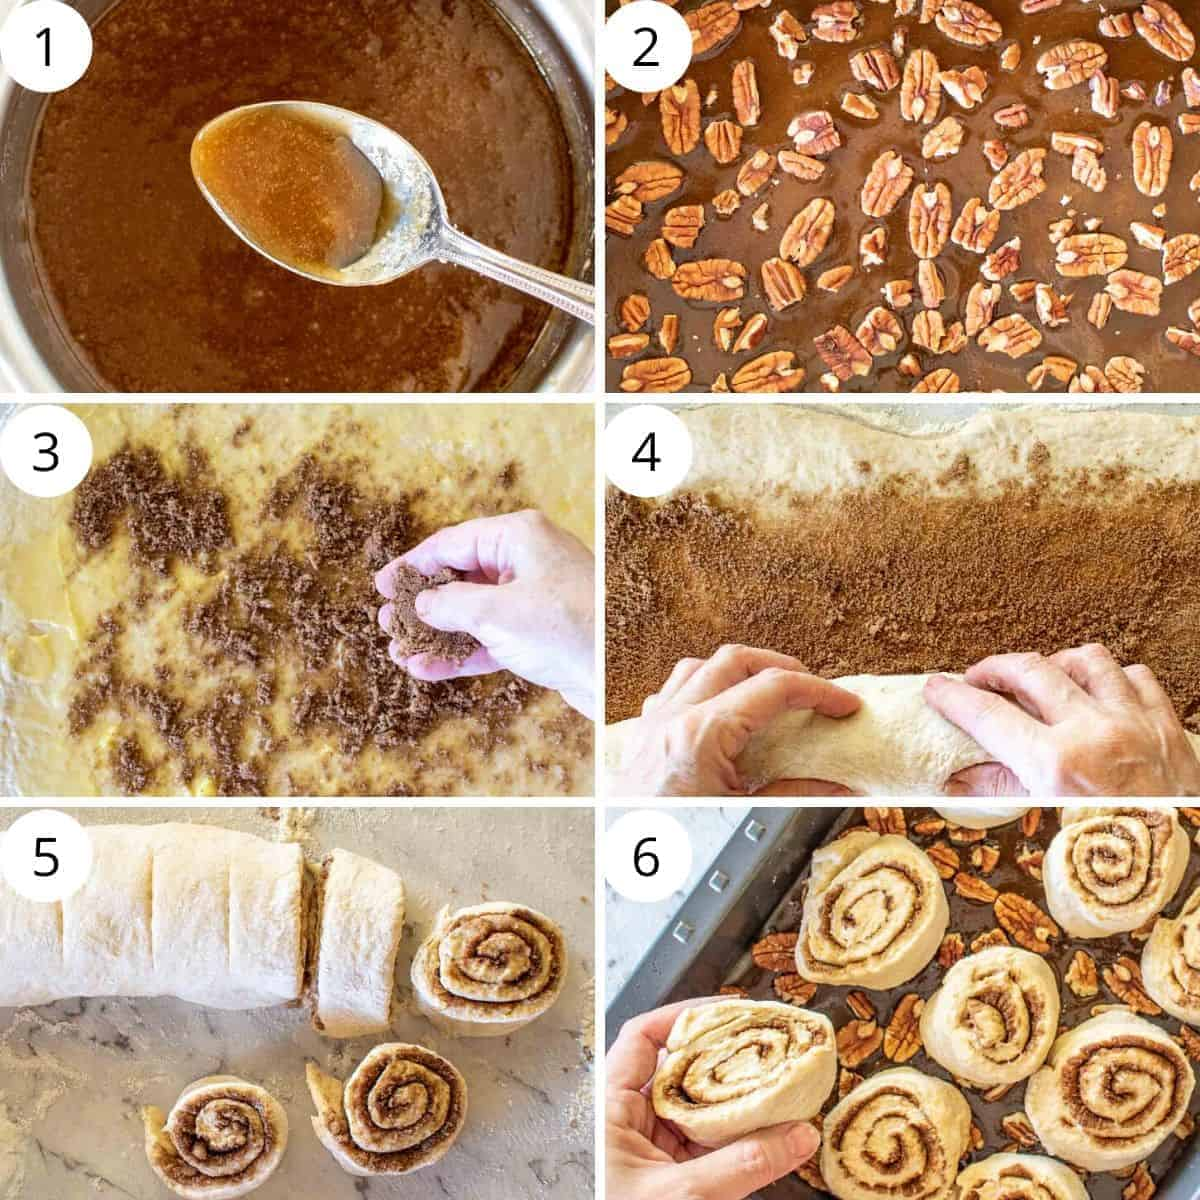 photo collage: image 1 caramel in saucepan and on spoon, image 2 pecans on caramel, image 3 scattering brown sugar over dough, image 4 rolling up dough, image 5 rolled up sticky bun dough and some slices cut, placing raw sticky buns in baking pan